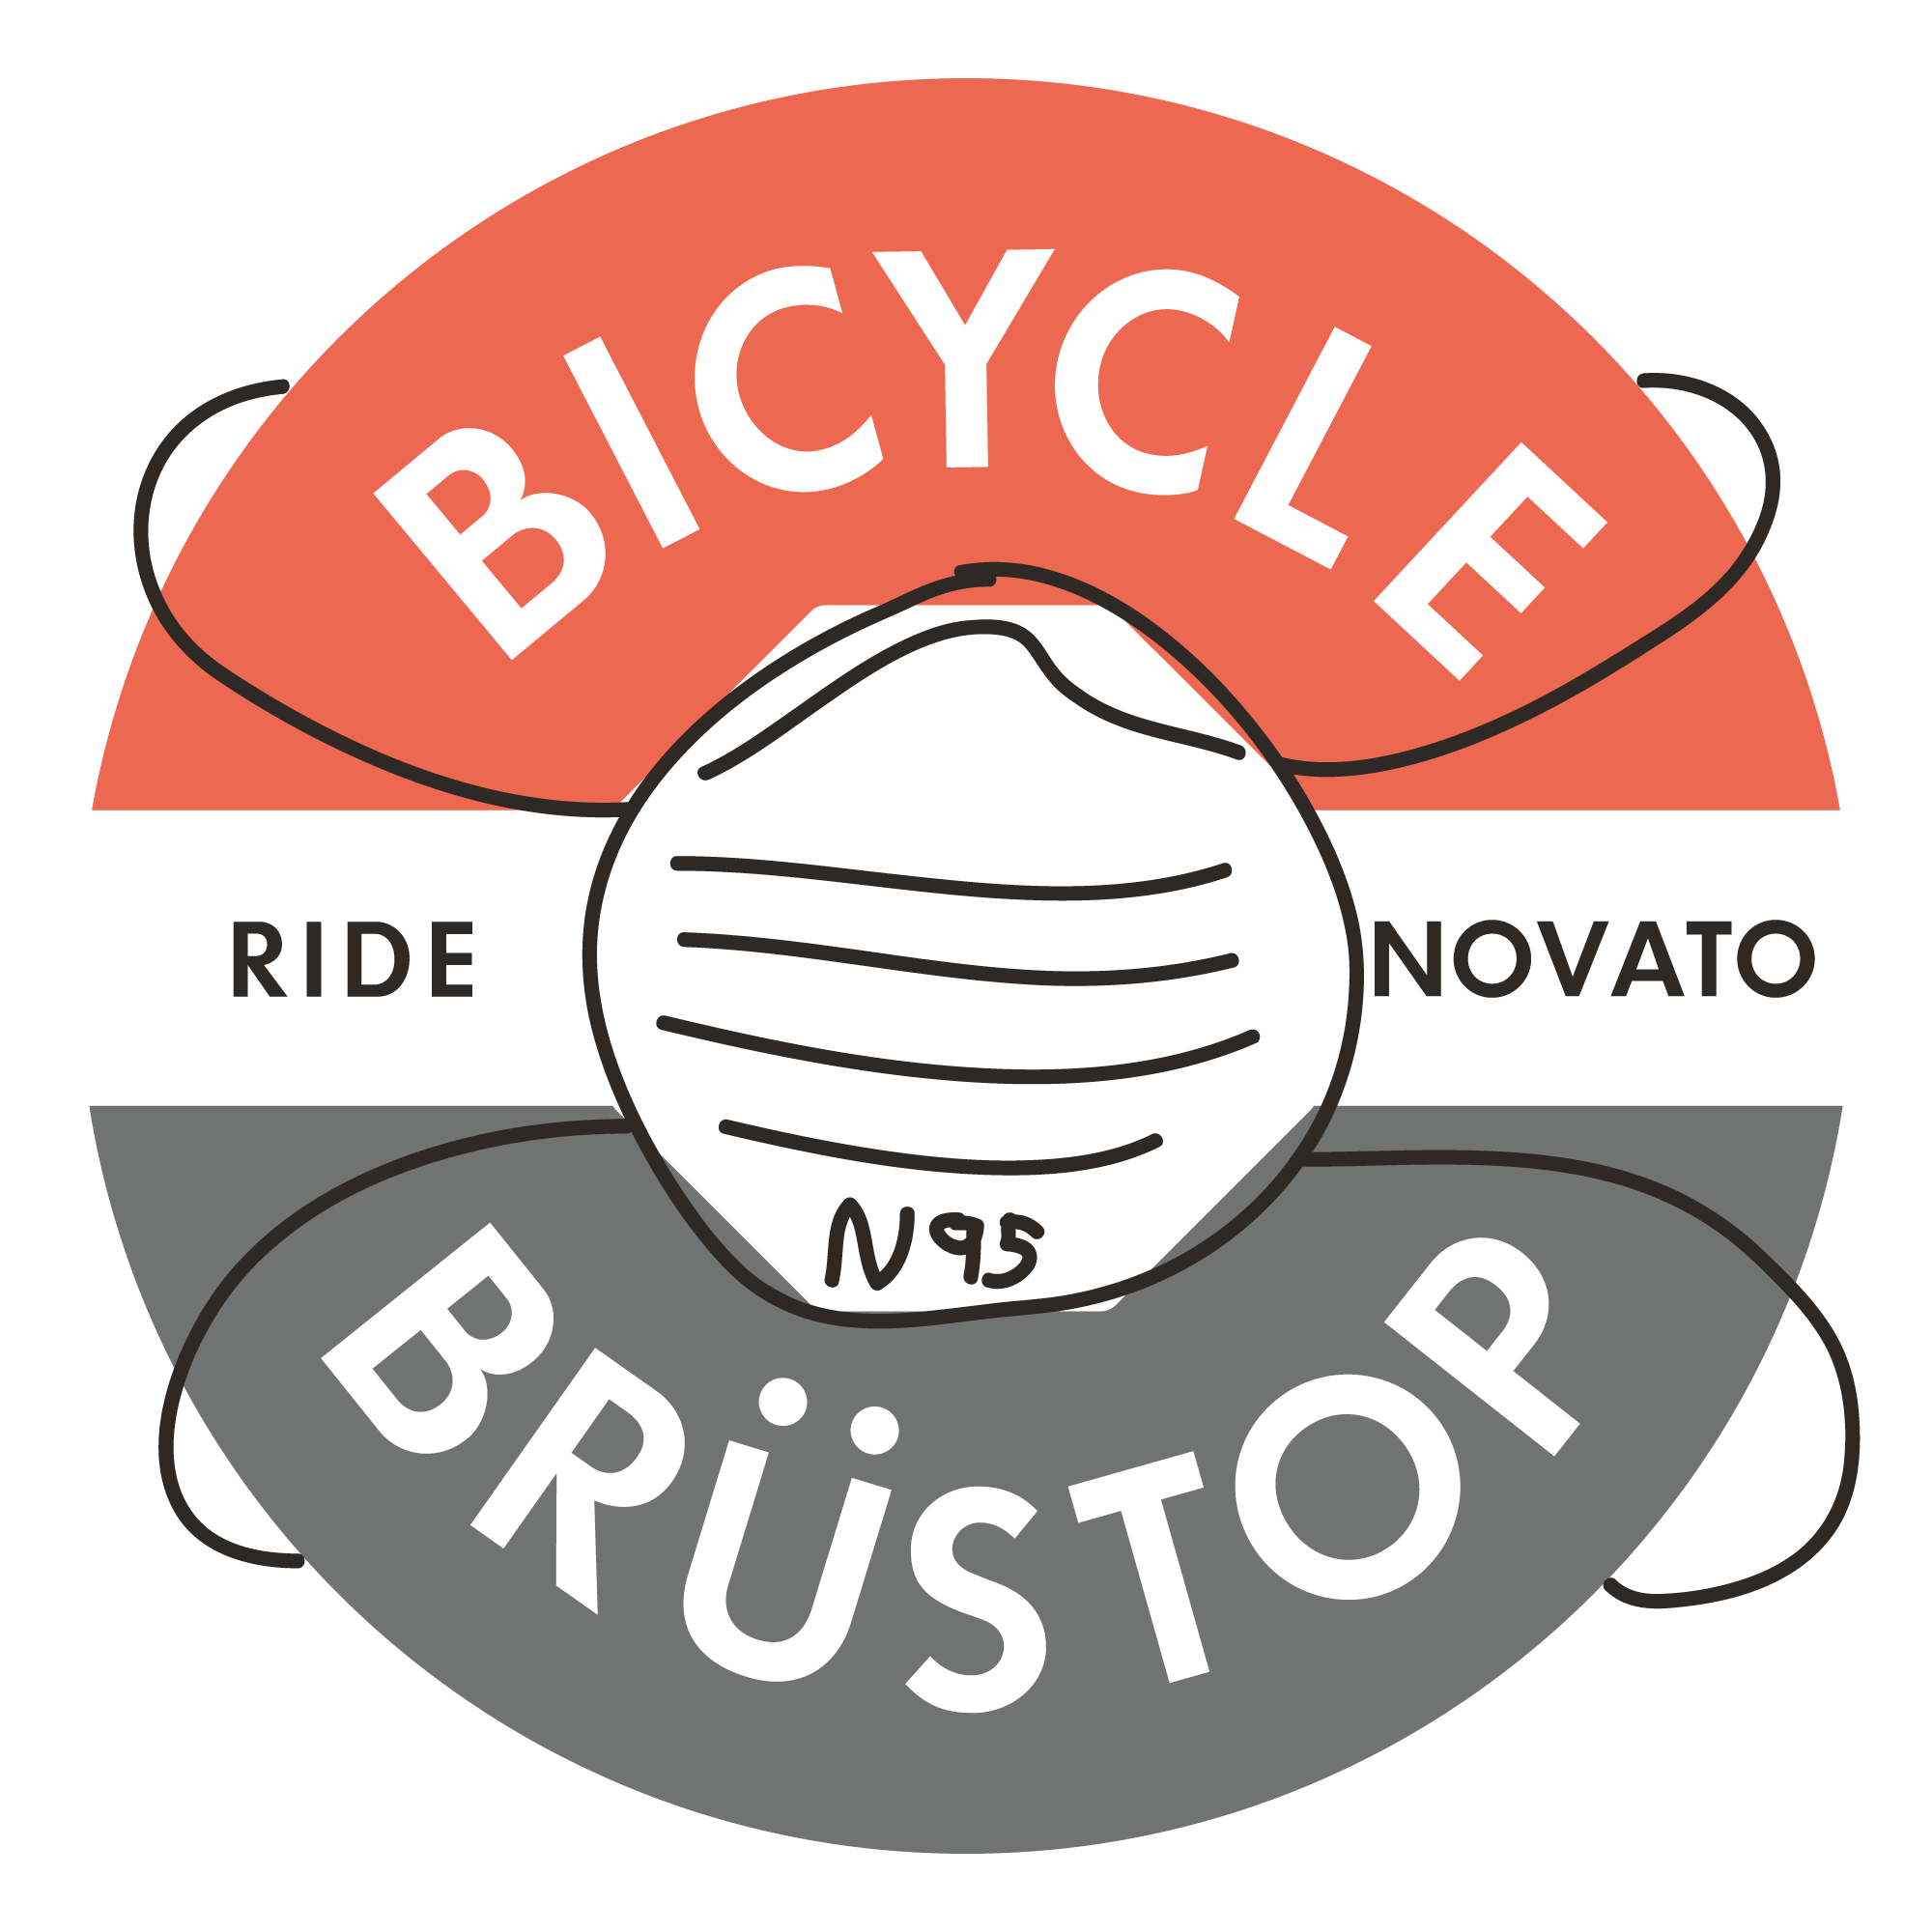 Bicycle Brustop logo